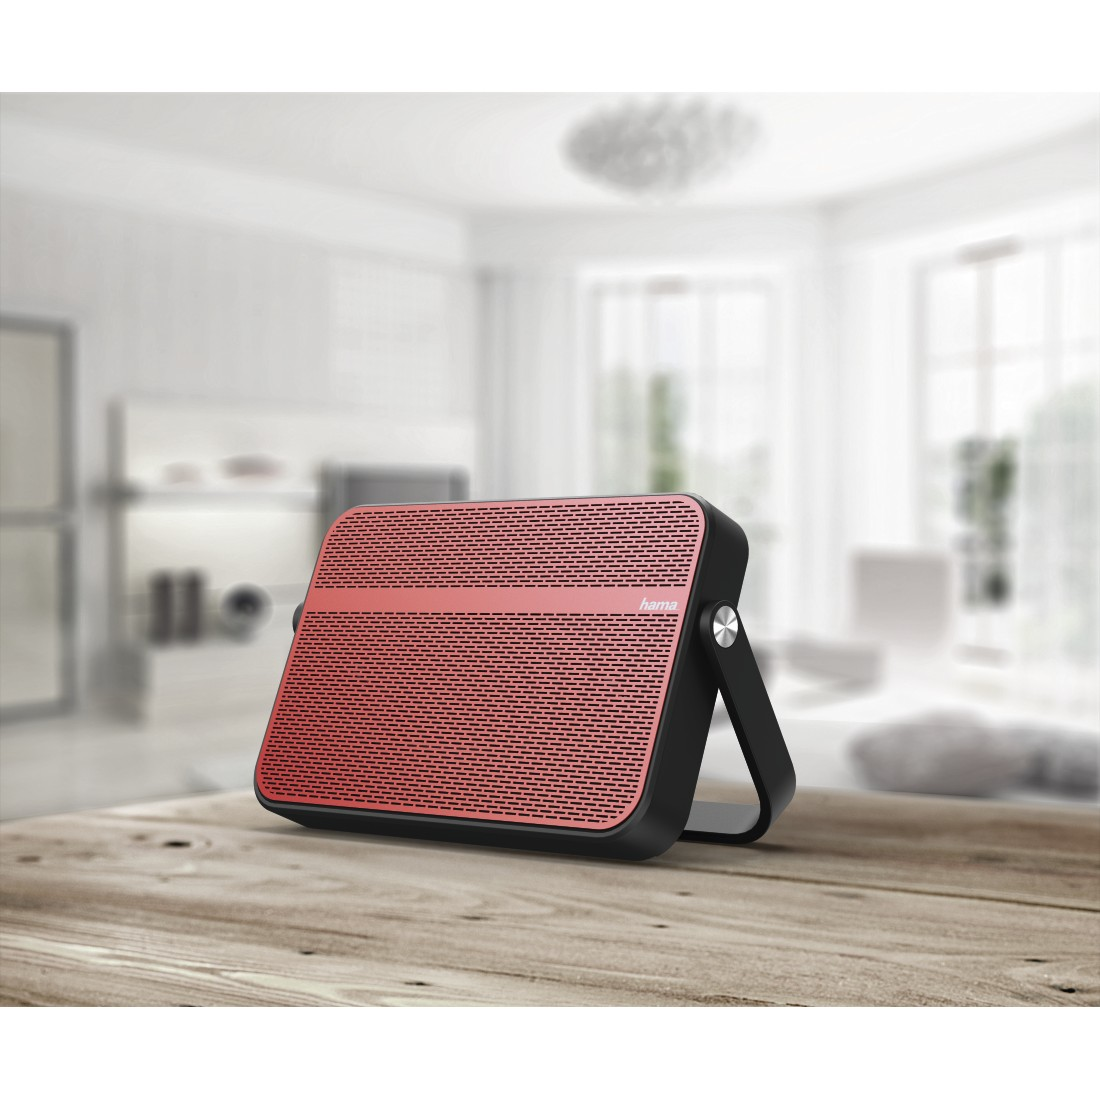 awx High-Res Appliance - Hama, Blade Mobile Bluetooth Speaker, red/black